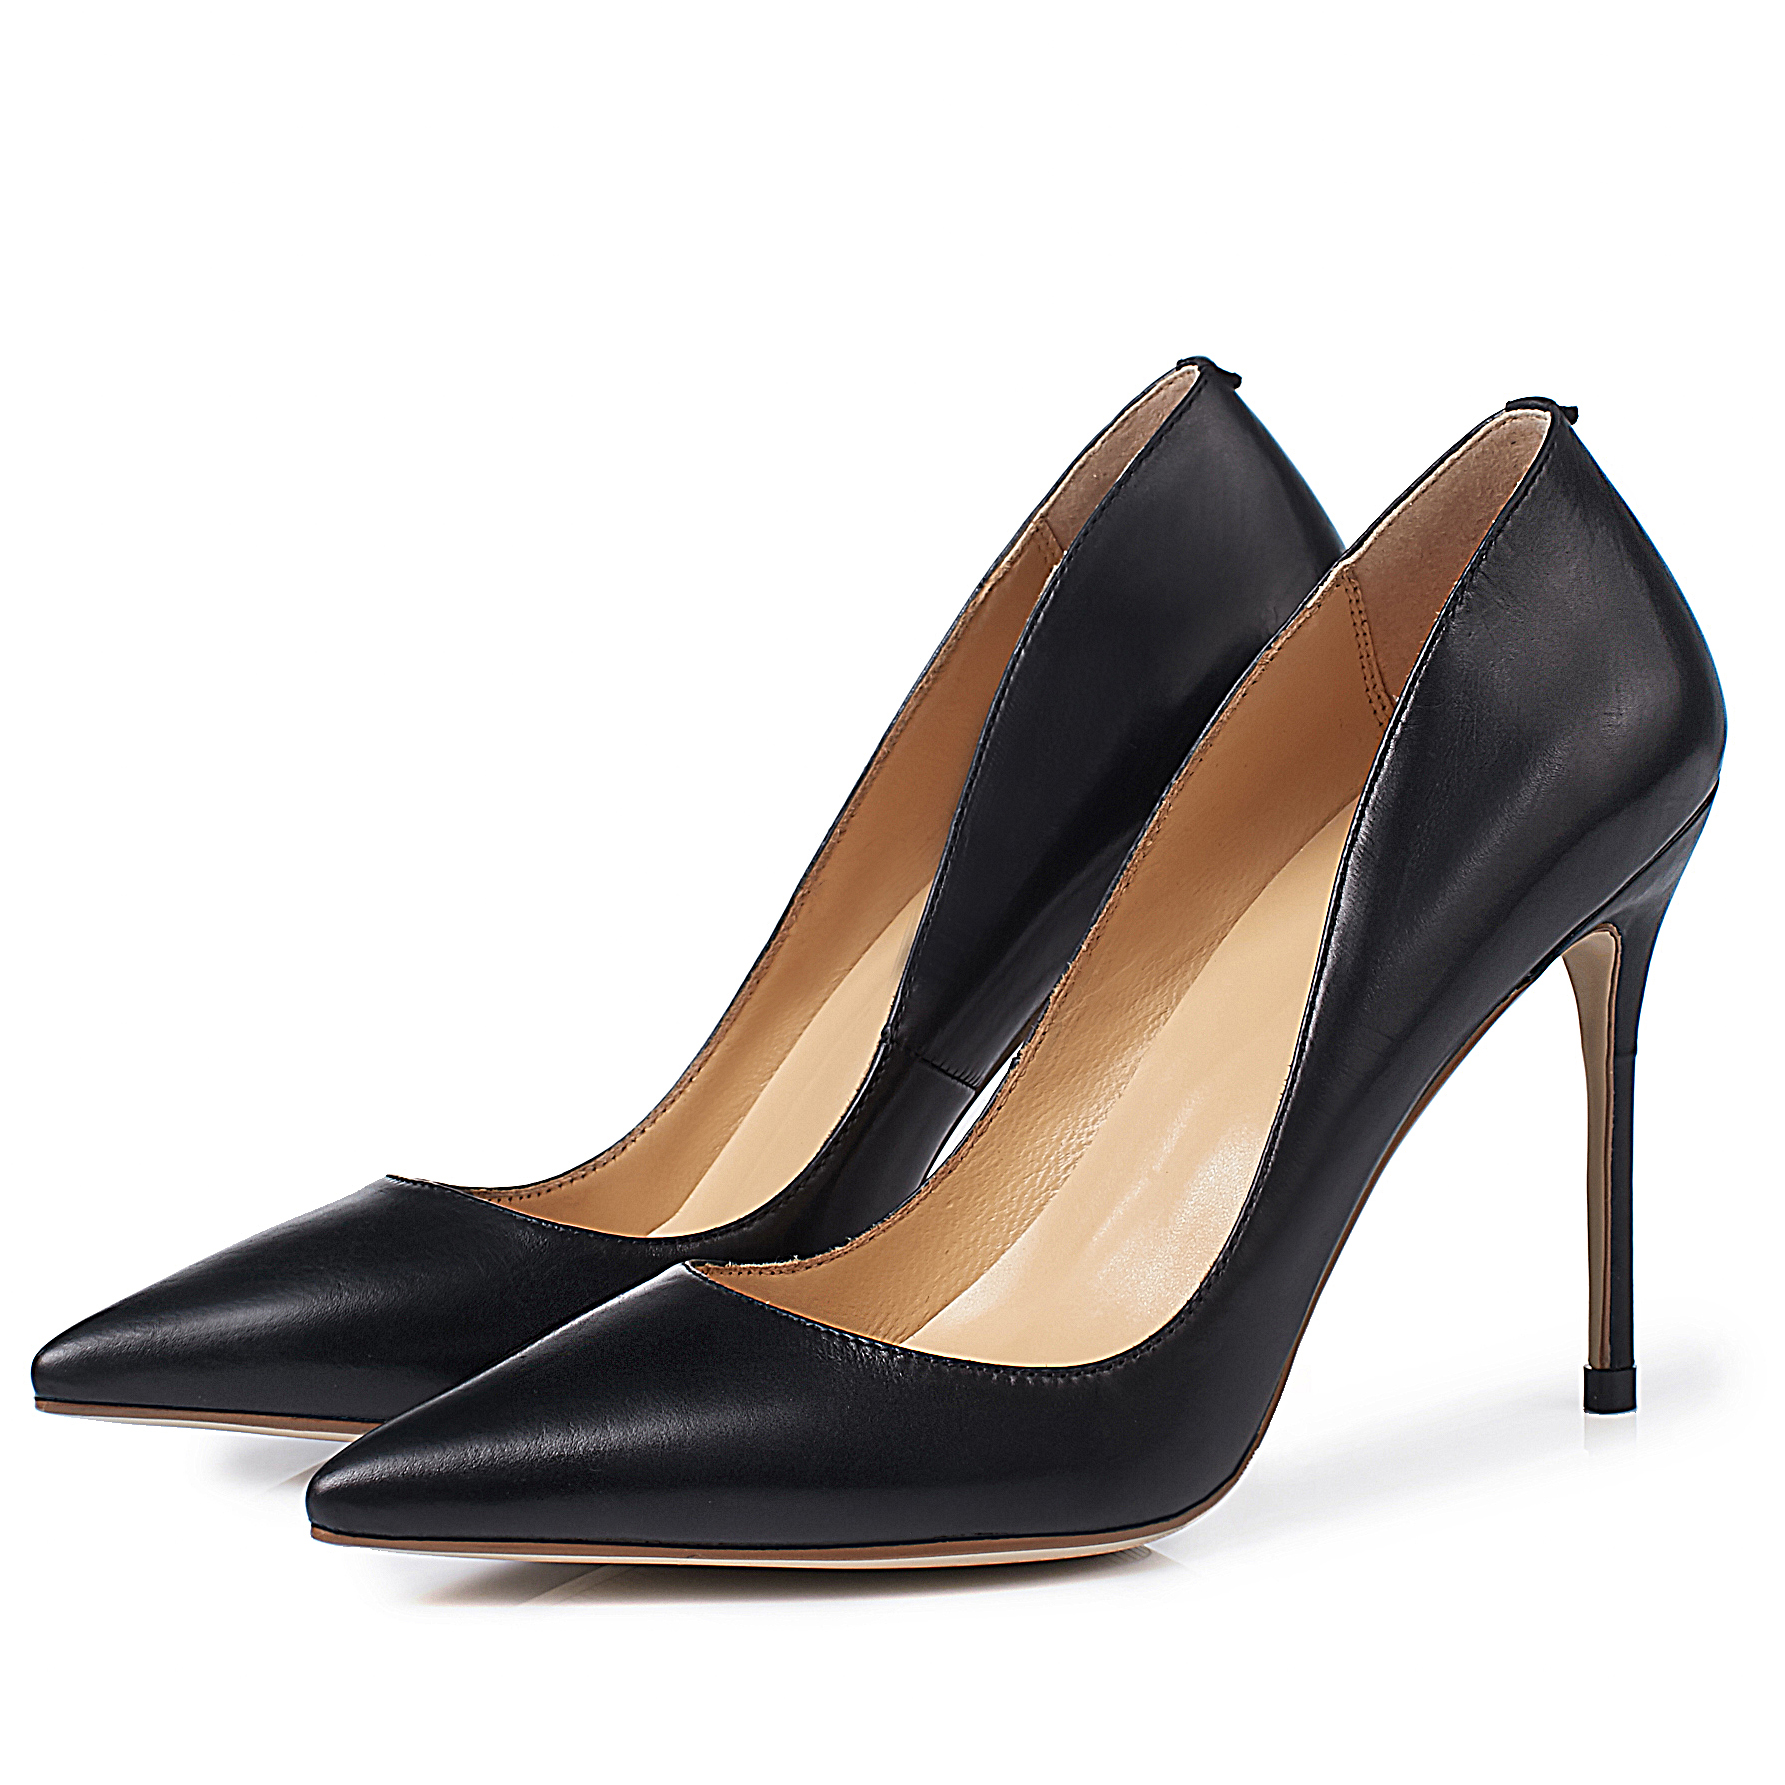 5c063fbfb5b US  65 - Arden Furtado new 2018 spring high heels pointed toe dress shoes  office lady thin heels genuine leather sexy woman shoes pumps -  www.ardenfurtado. ...